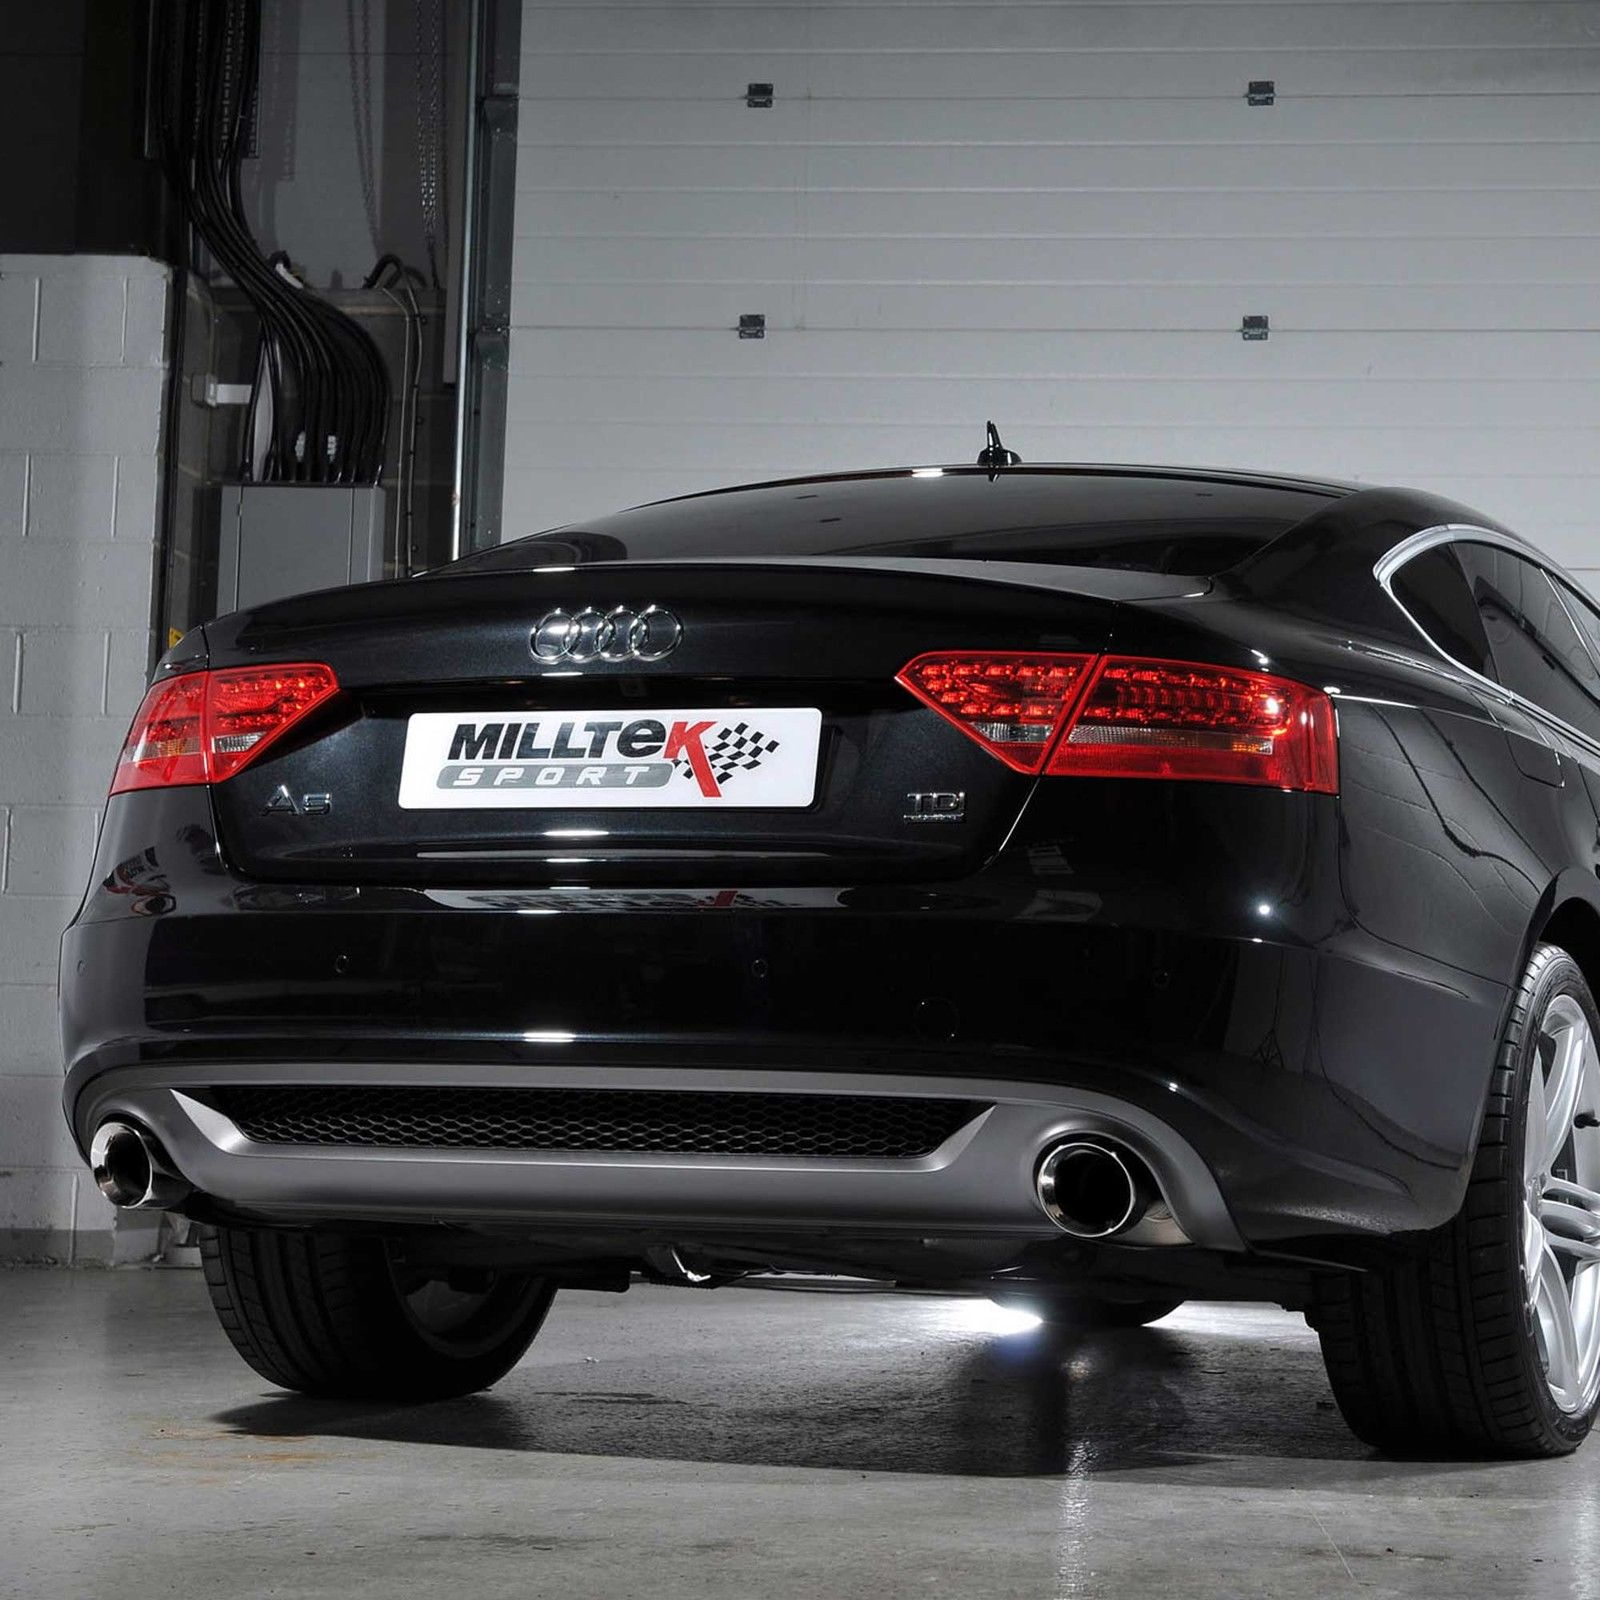 Milltek Dual Exit Exhaust With Valance Audi A4 B8 20tdi S Line